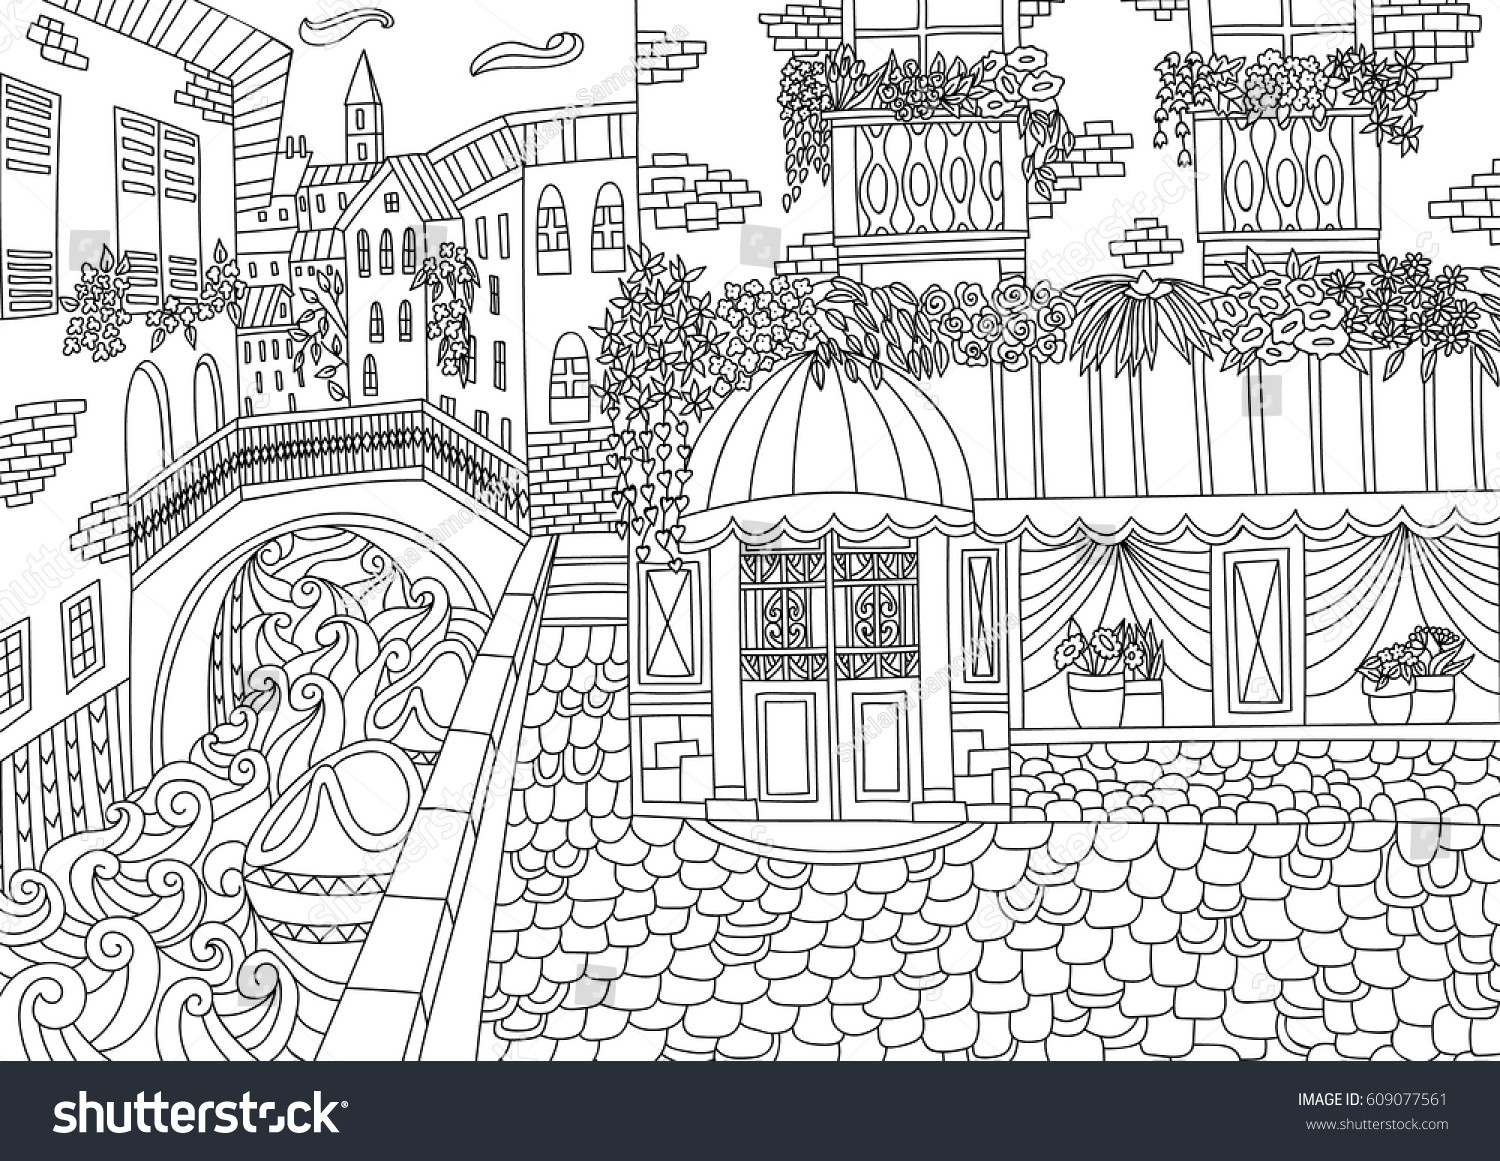 Italy Coloring Pages Stock Vector Coloring For Adult With Venice Italy Coloring Page In